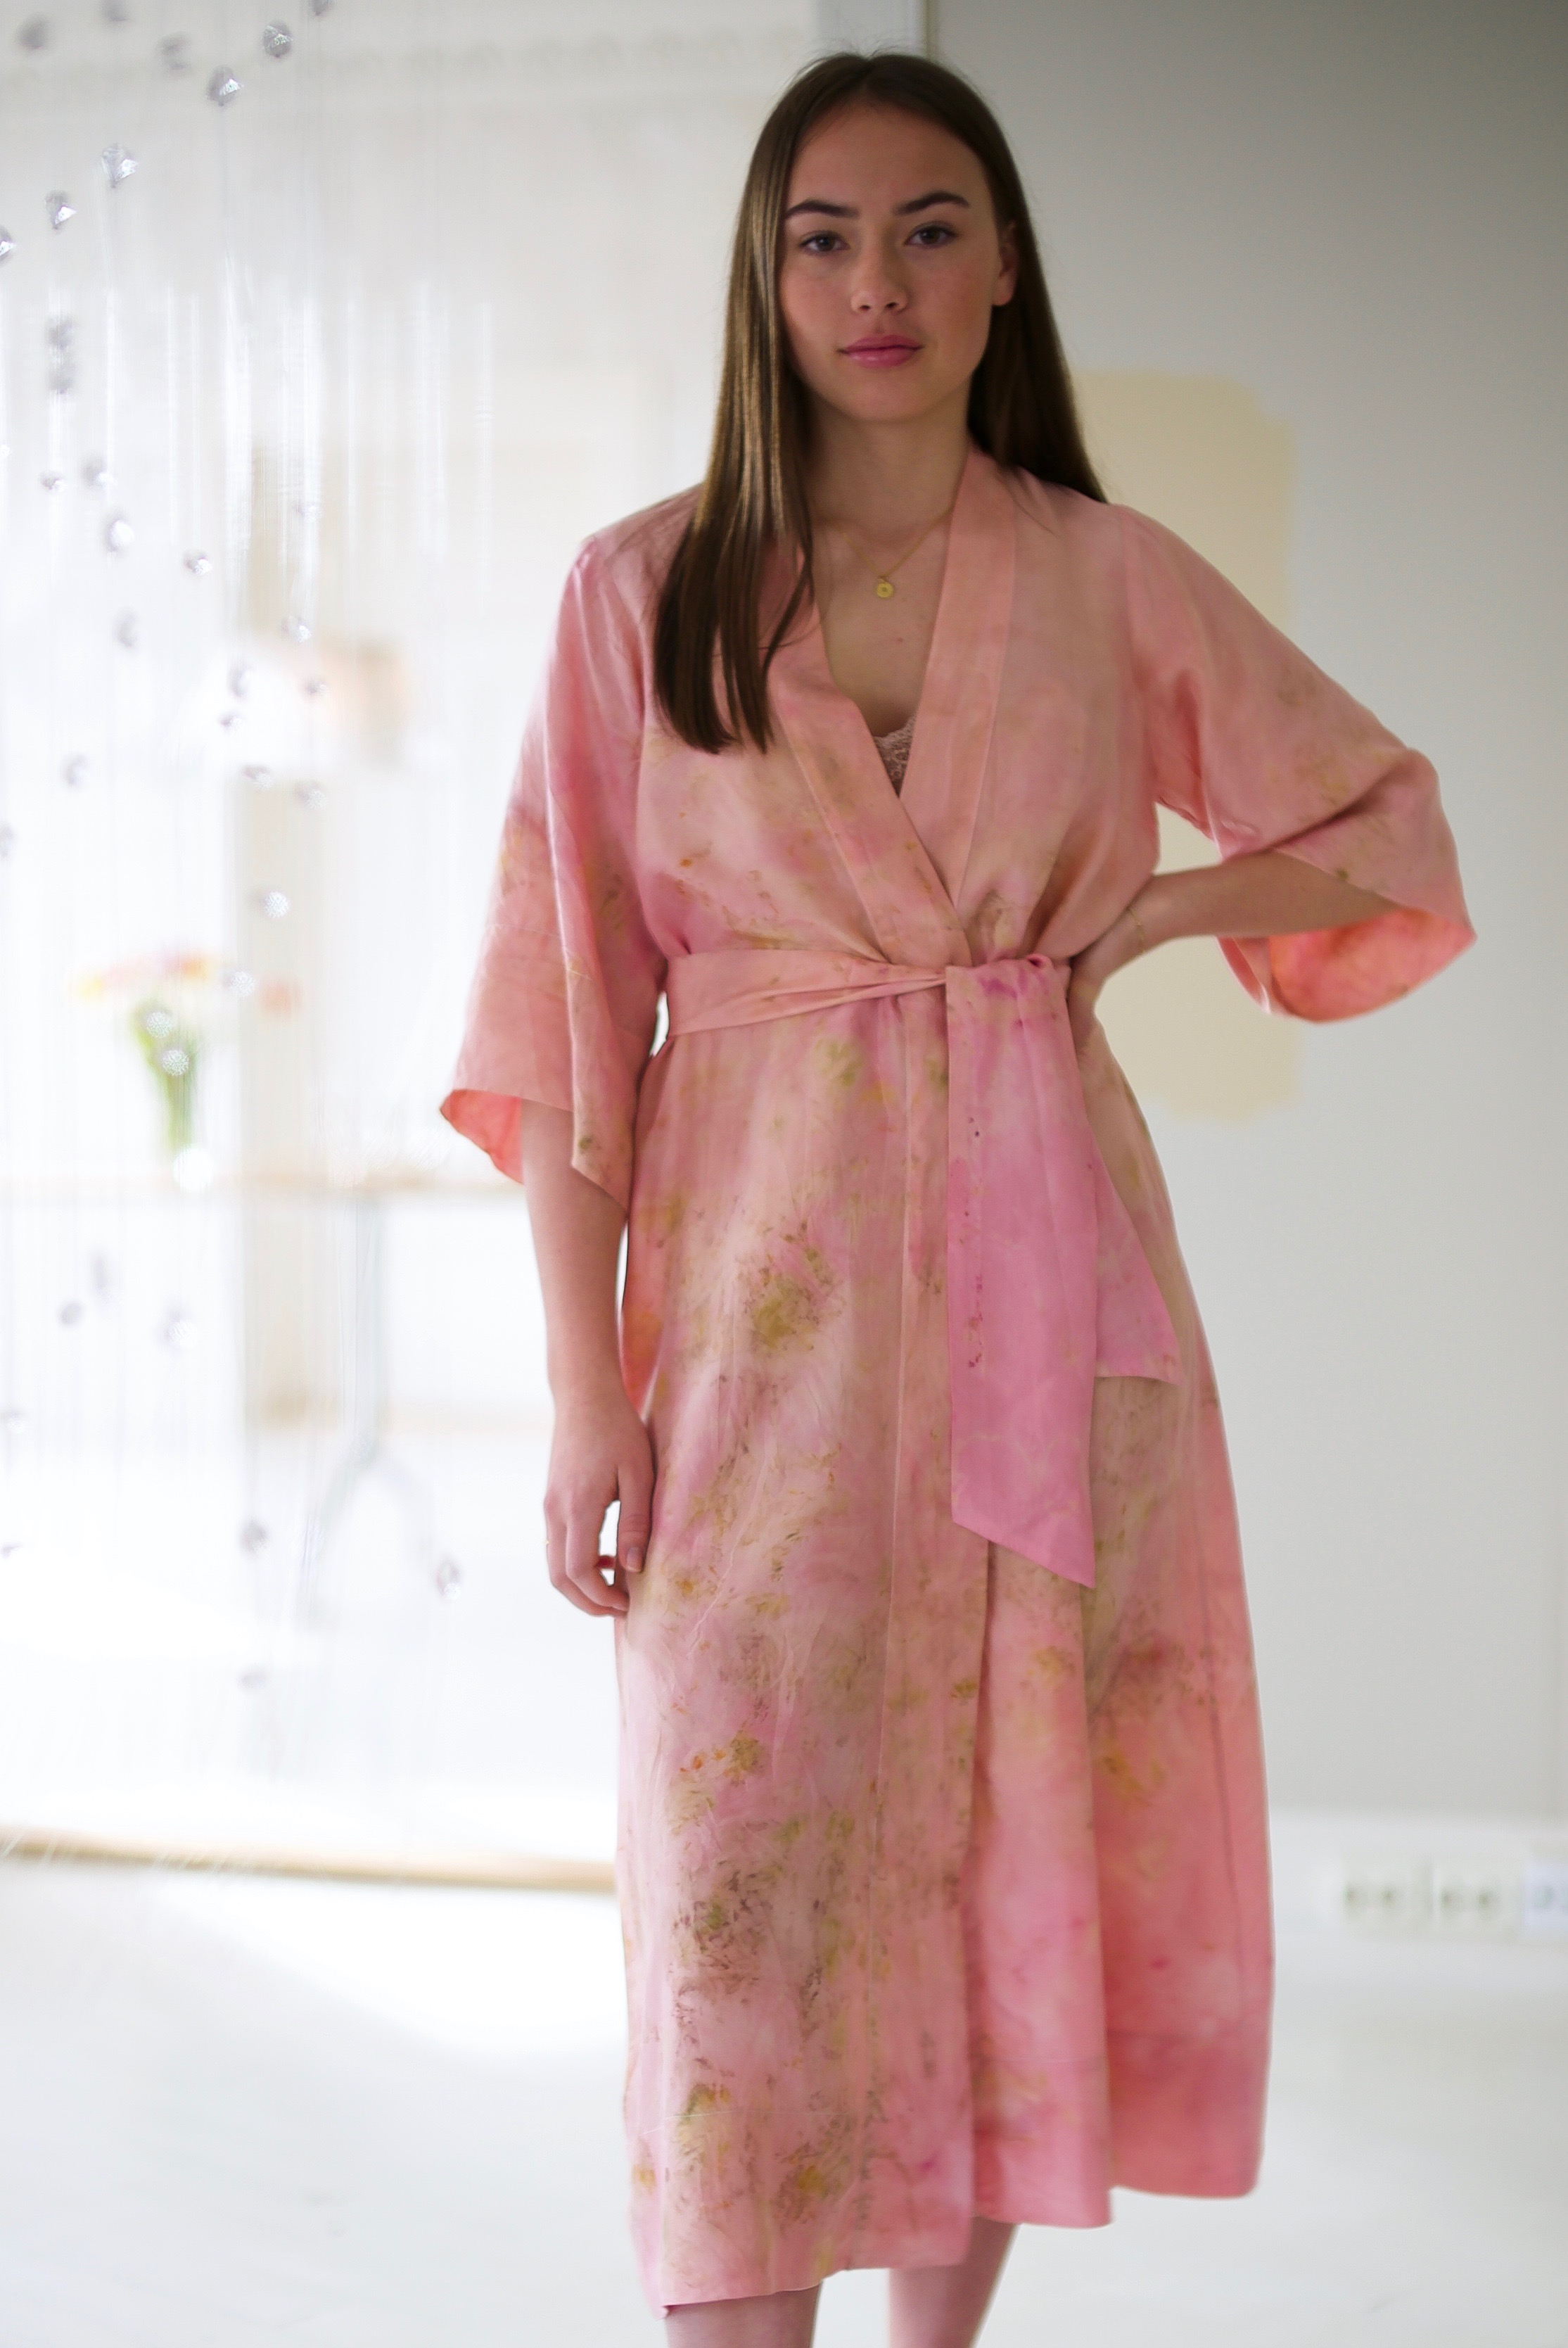 SILK ROBE · No. 16 OF 33 · SIZE MEDIUM